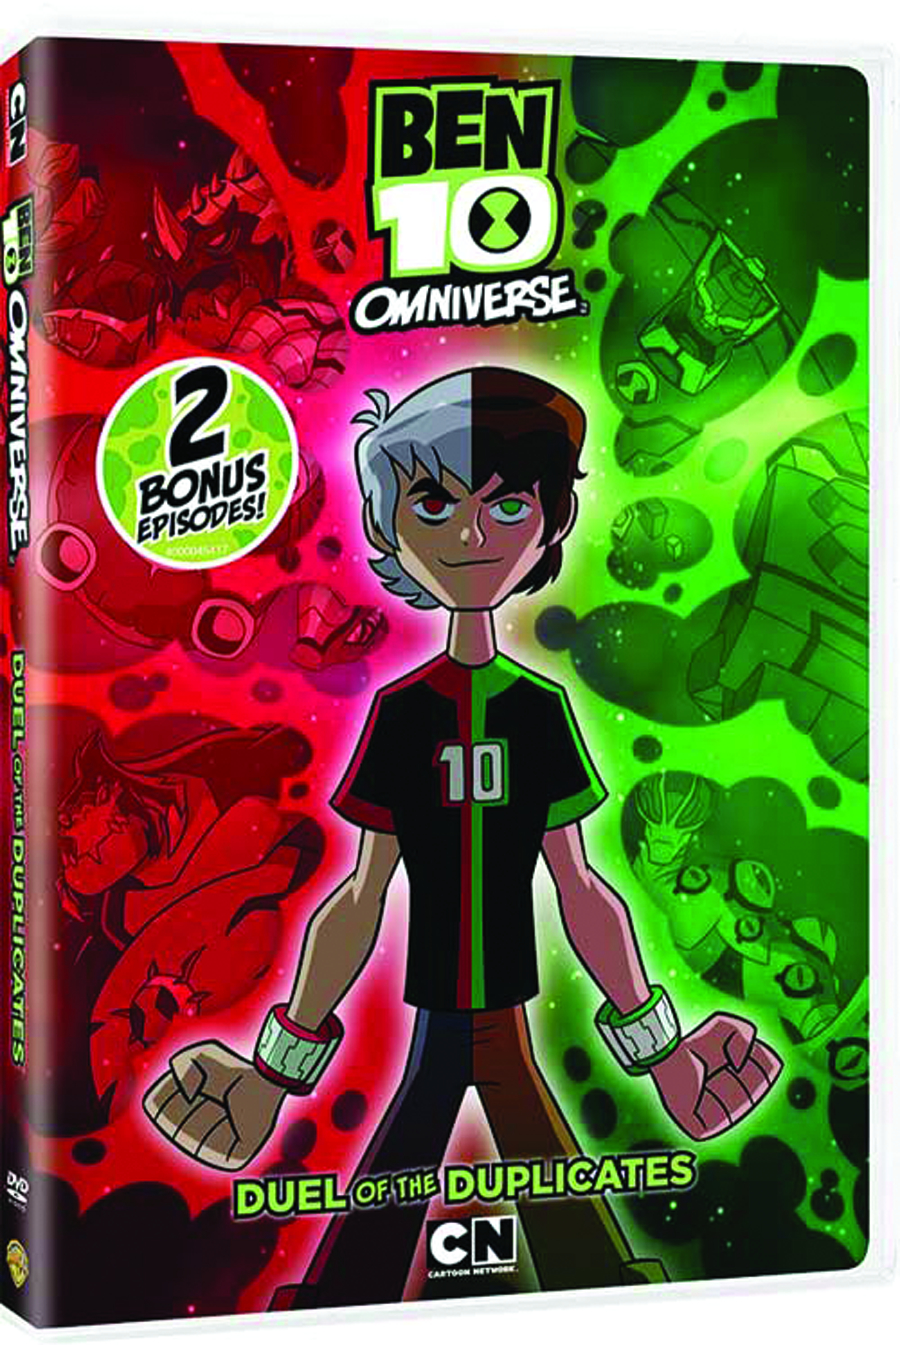 Ben 10: Duel of the Duplicates Game - Play online at Y8.com